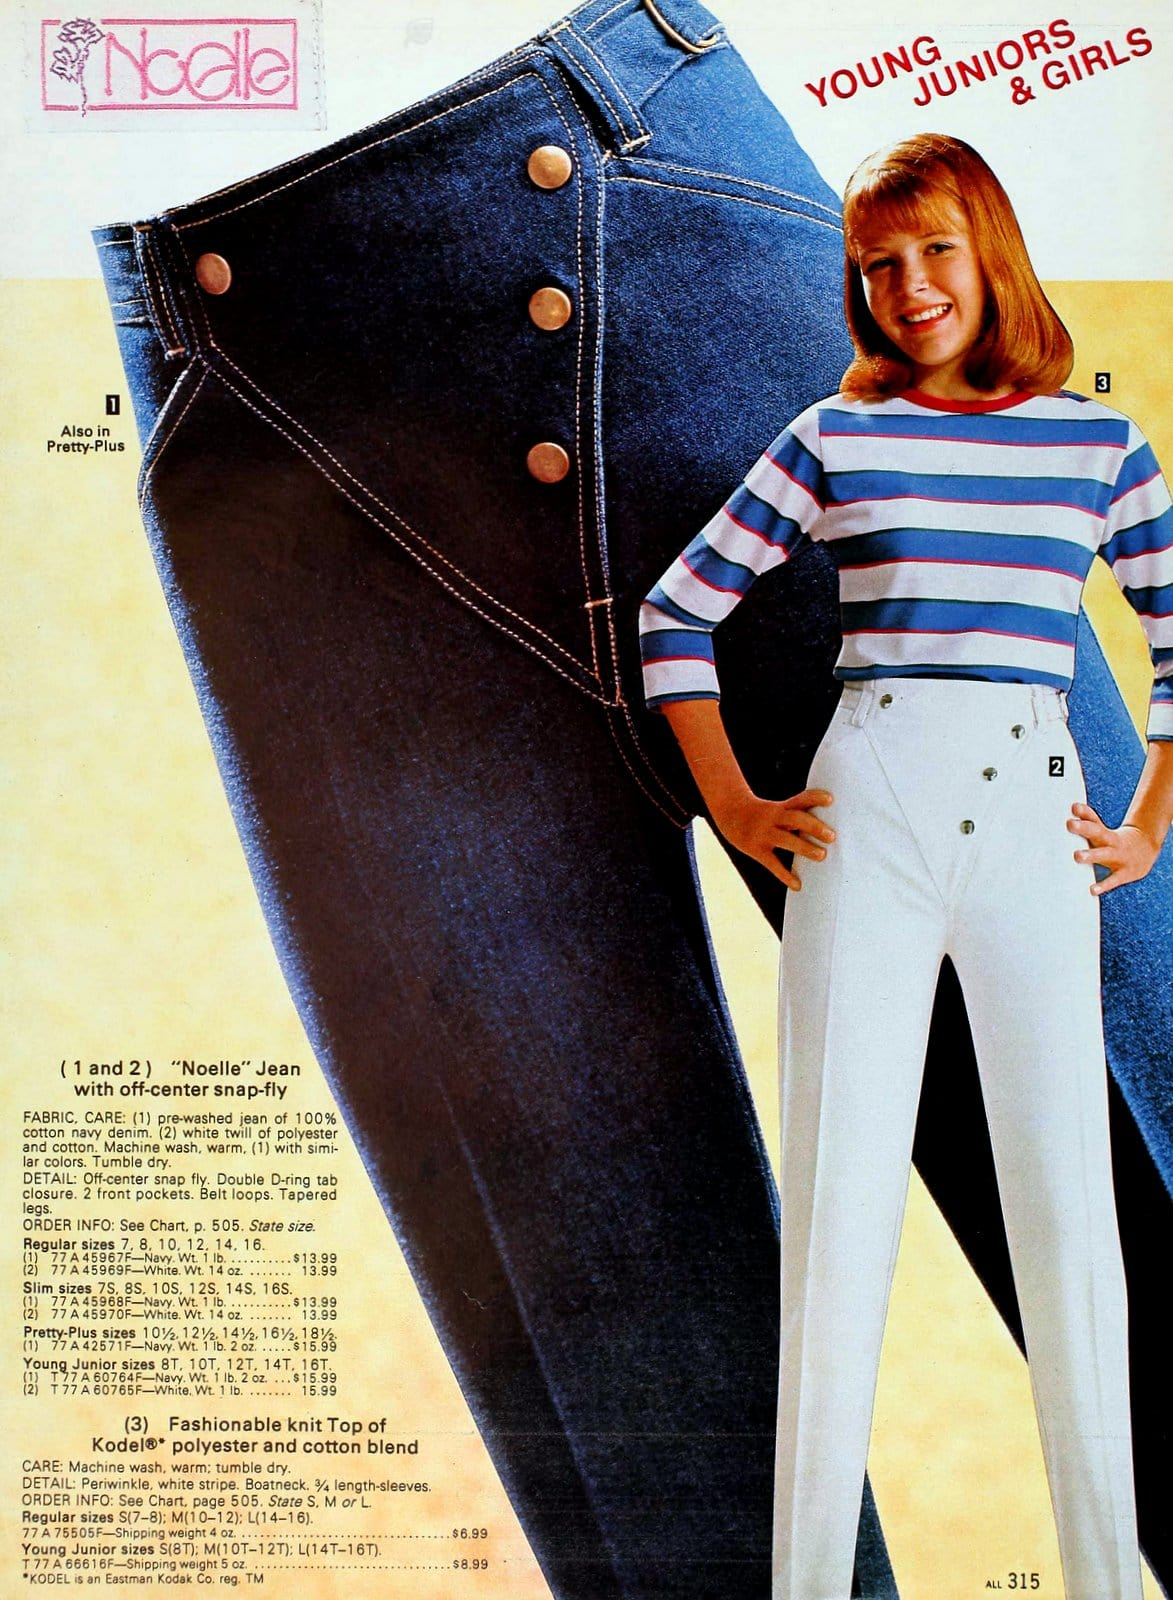 Vintage Noelle jeans for young juniors and girls (1983)